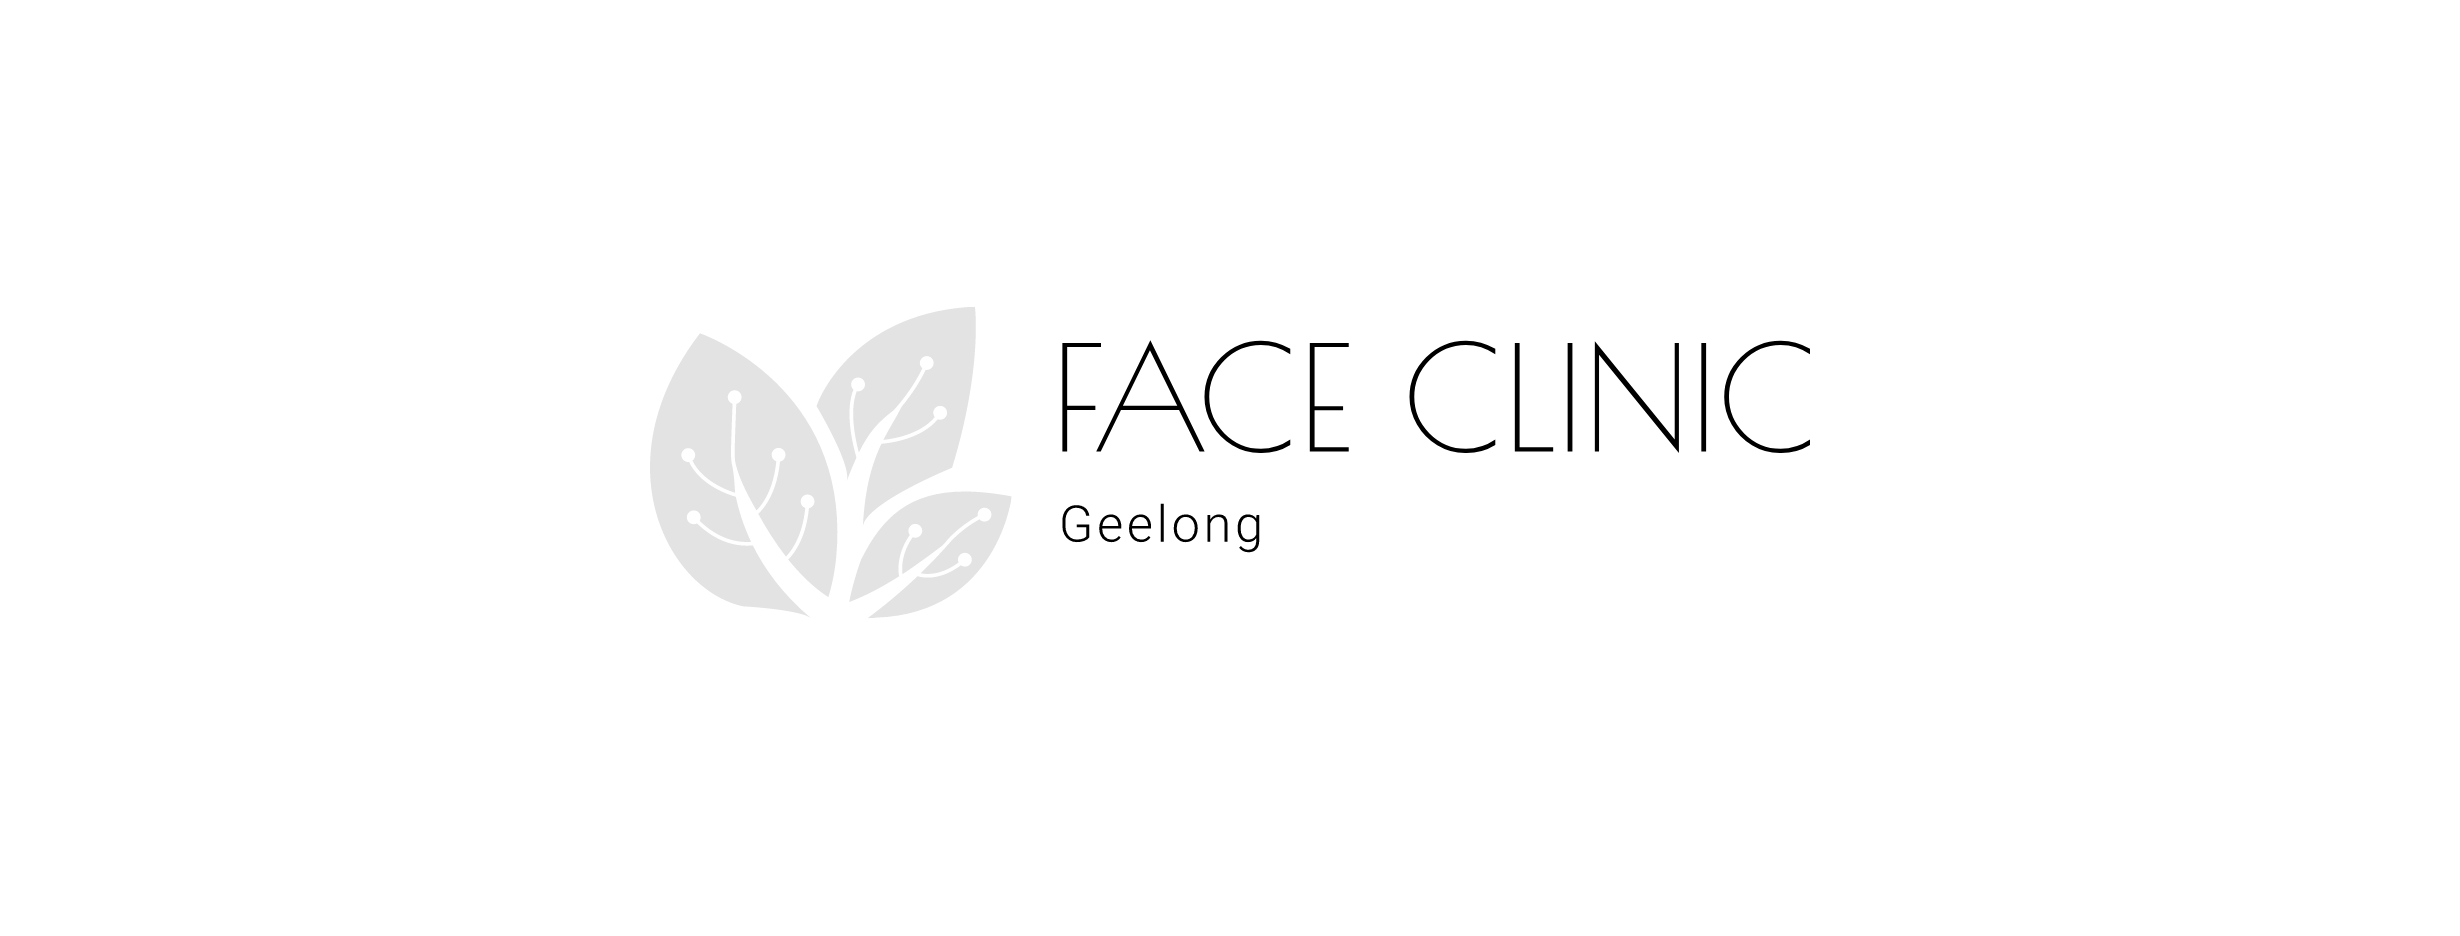 Face Clinic Geelong is now a Stockist of Medik8 Skincare!!